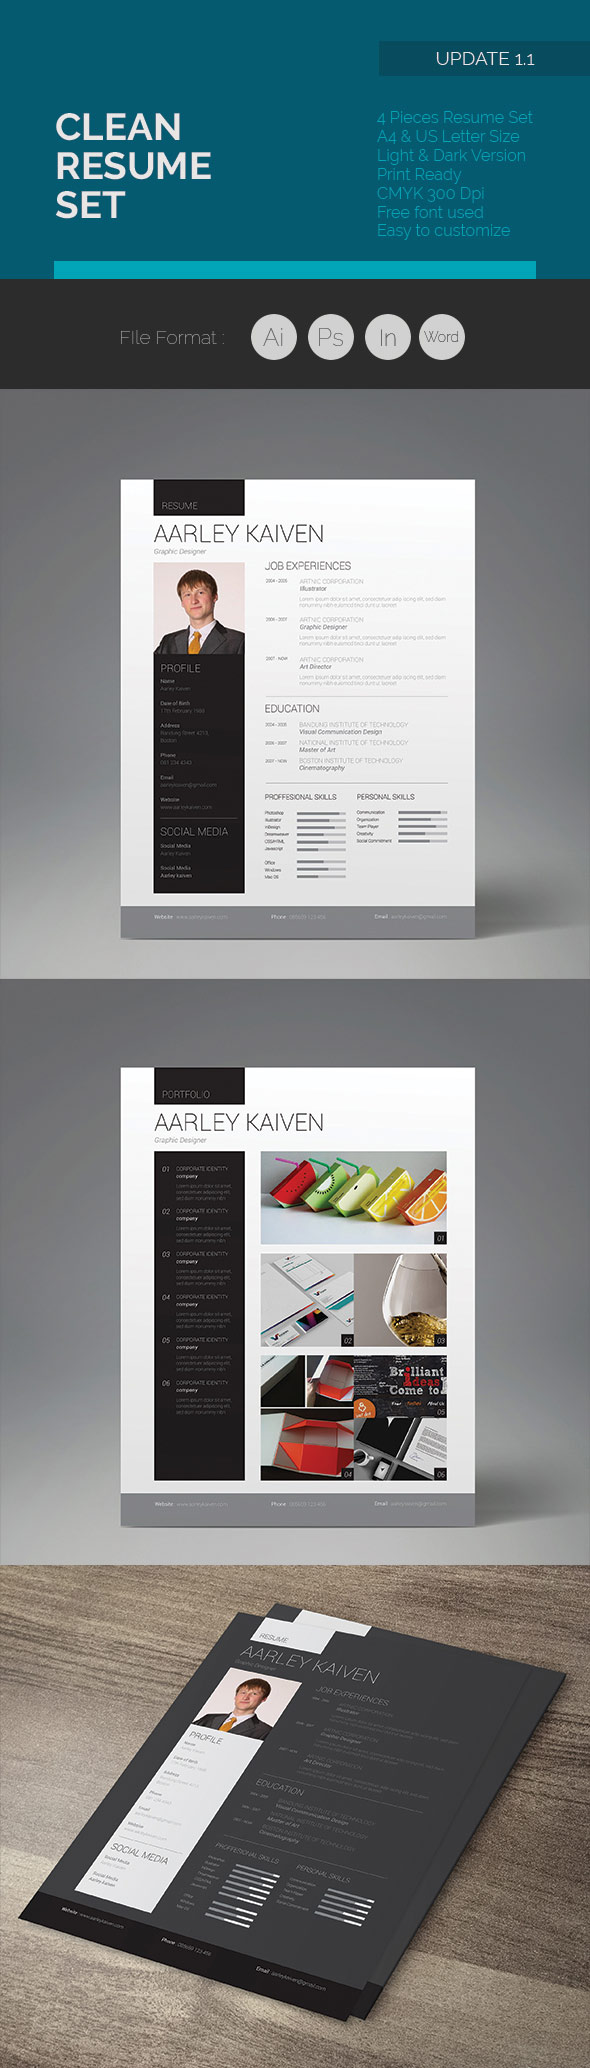 pro design clean resume set - Creative Resume Design Templates